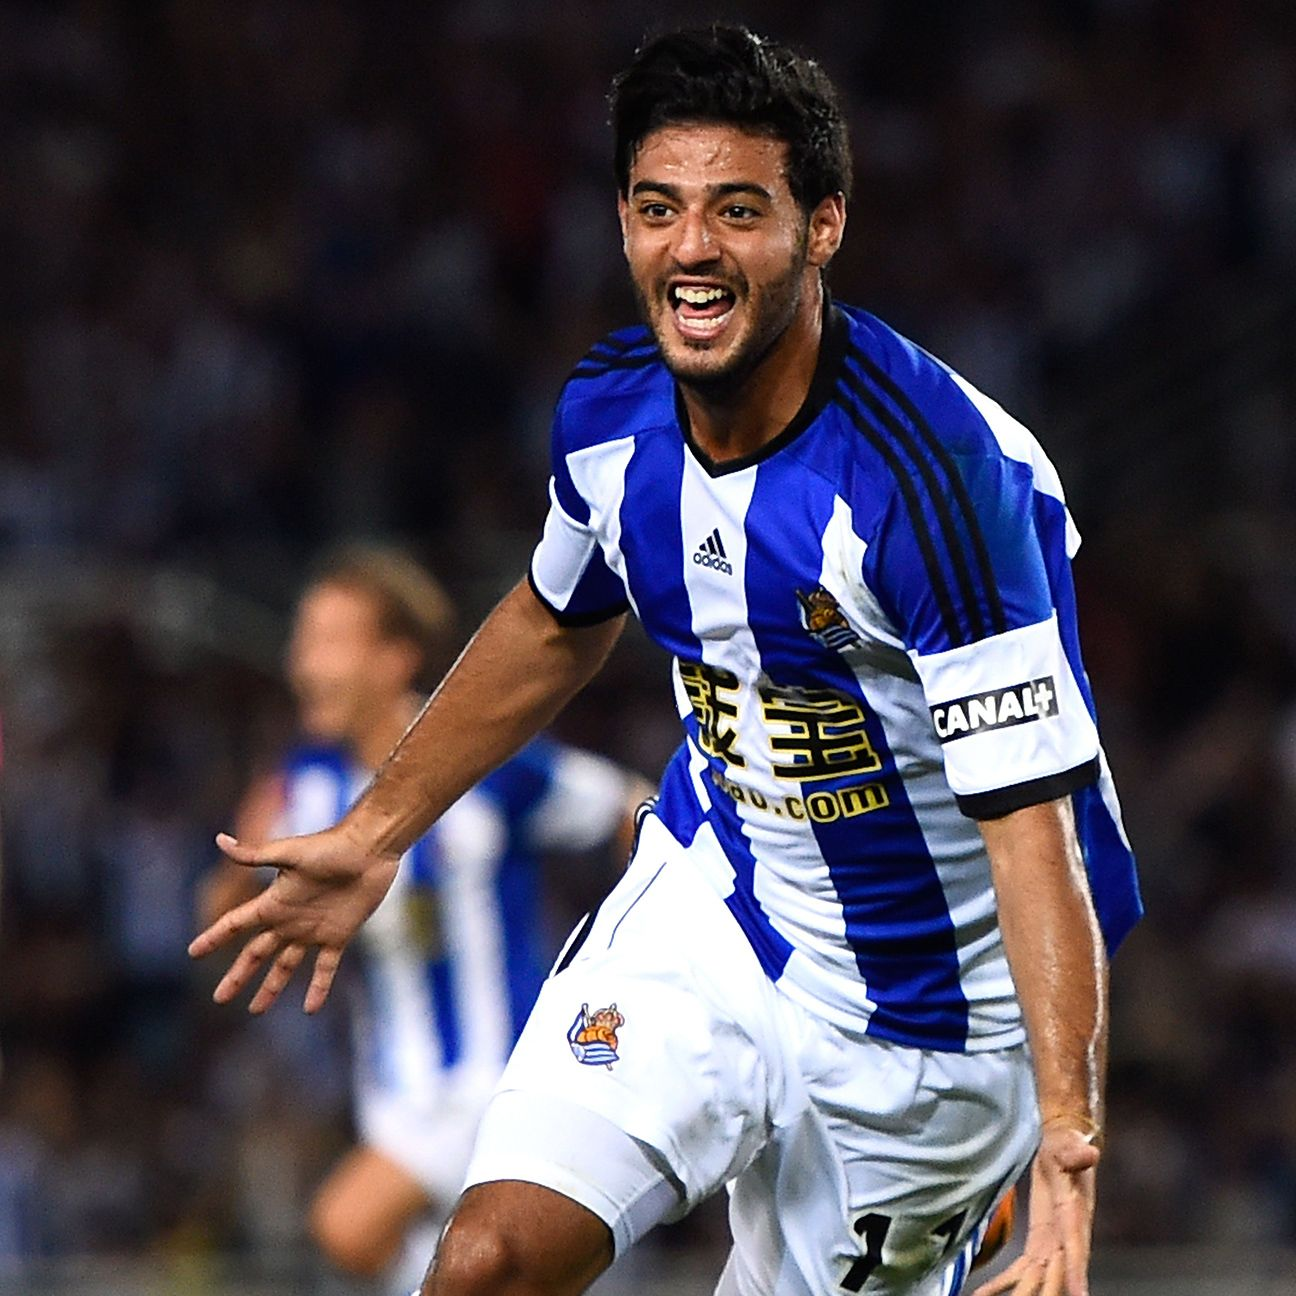 Injuries have limited Carlos Vela's 2014-15 season thus far at Real Sociedad.